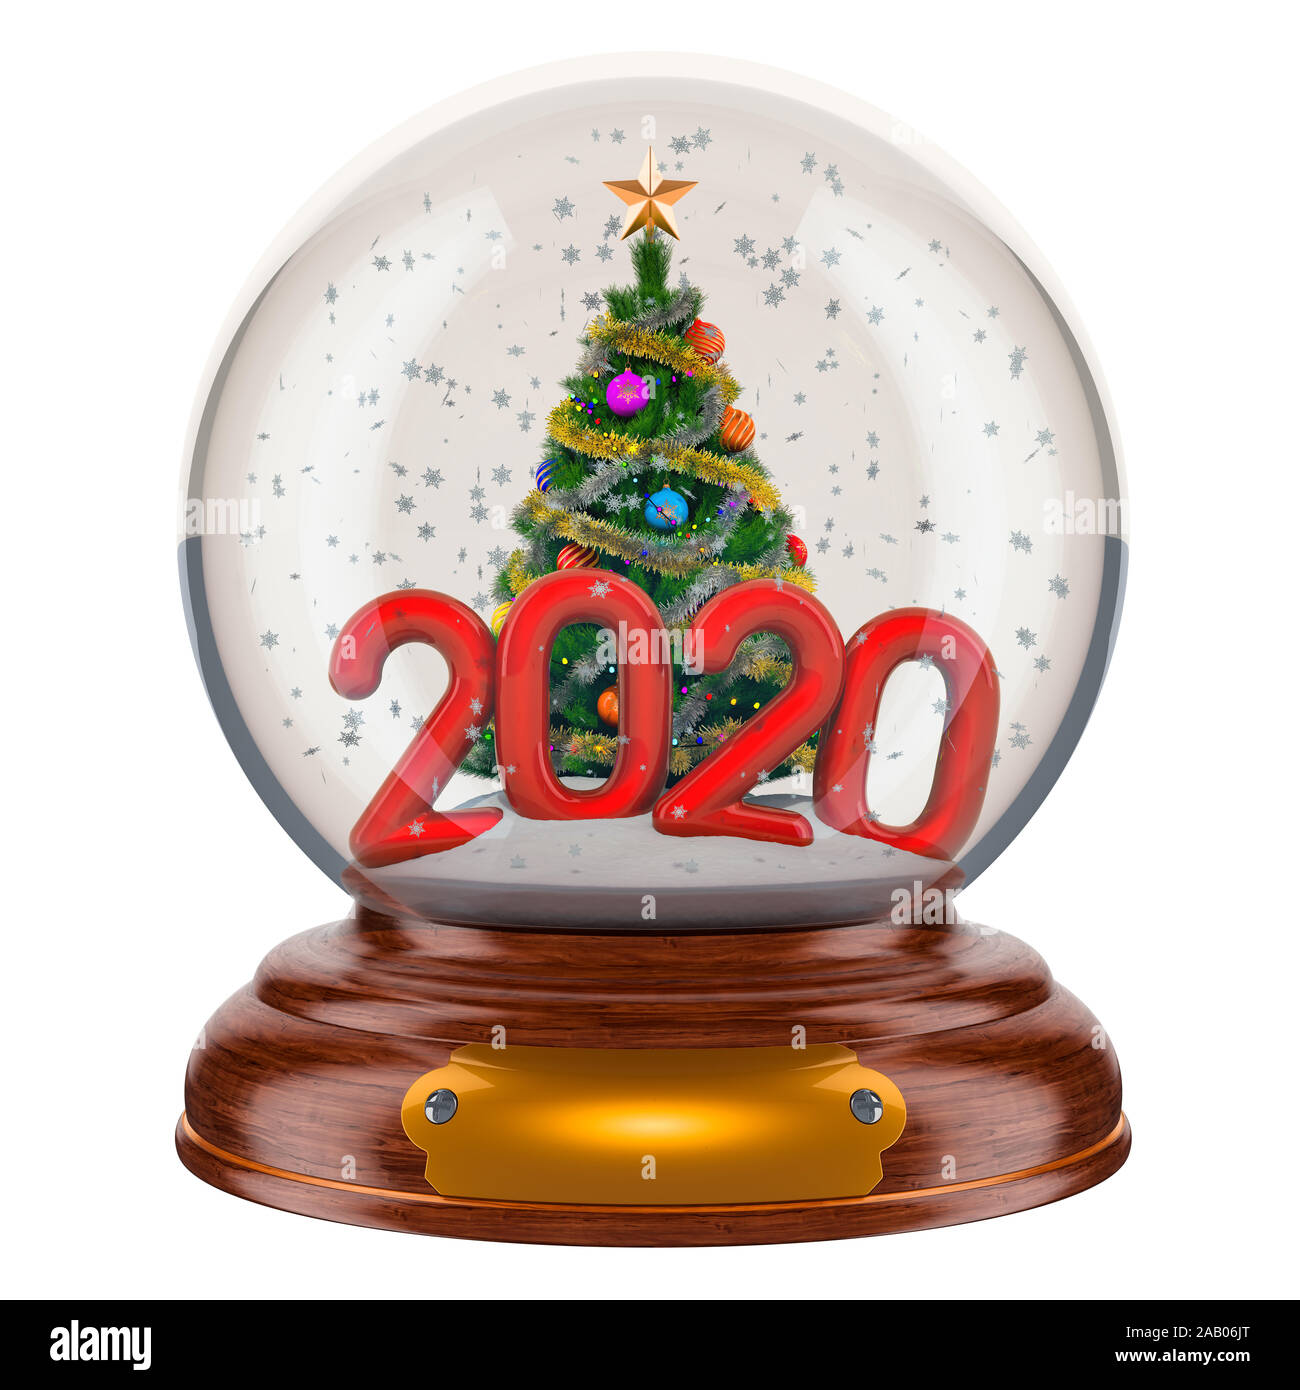 Snow On Christmas 2020 Christmas snow globe 2020 with Christmas tree inside, 3D rendering